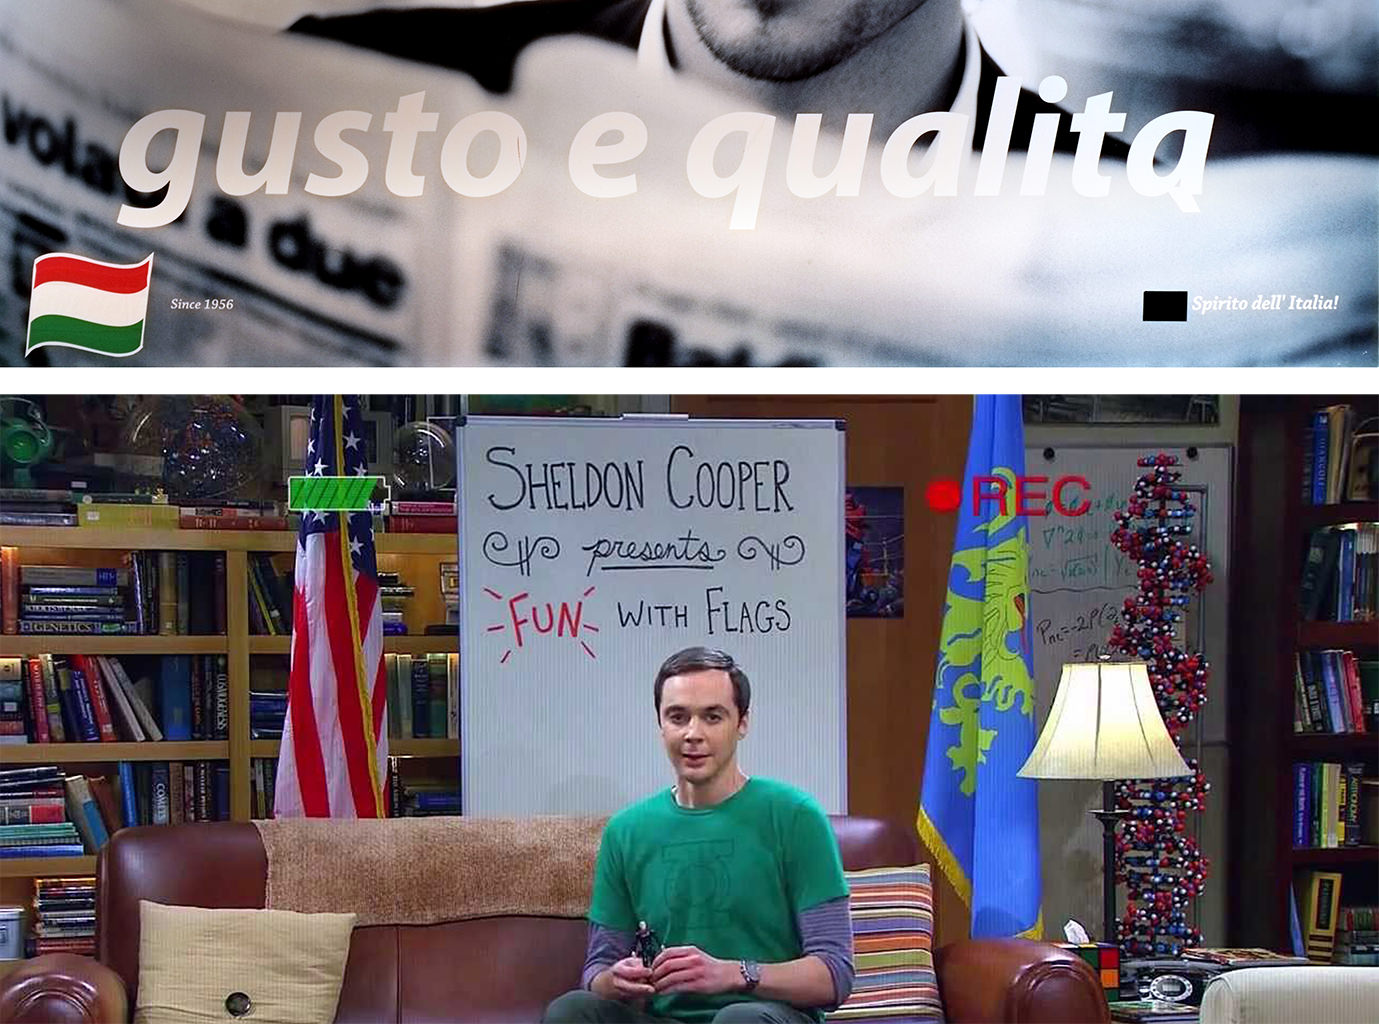 Russian Pizza chain Vs Dr. Sheldon Cooper